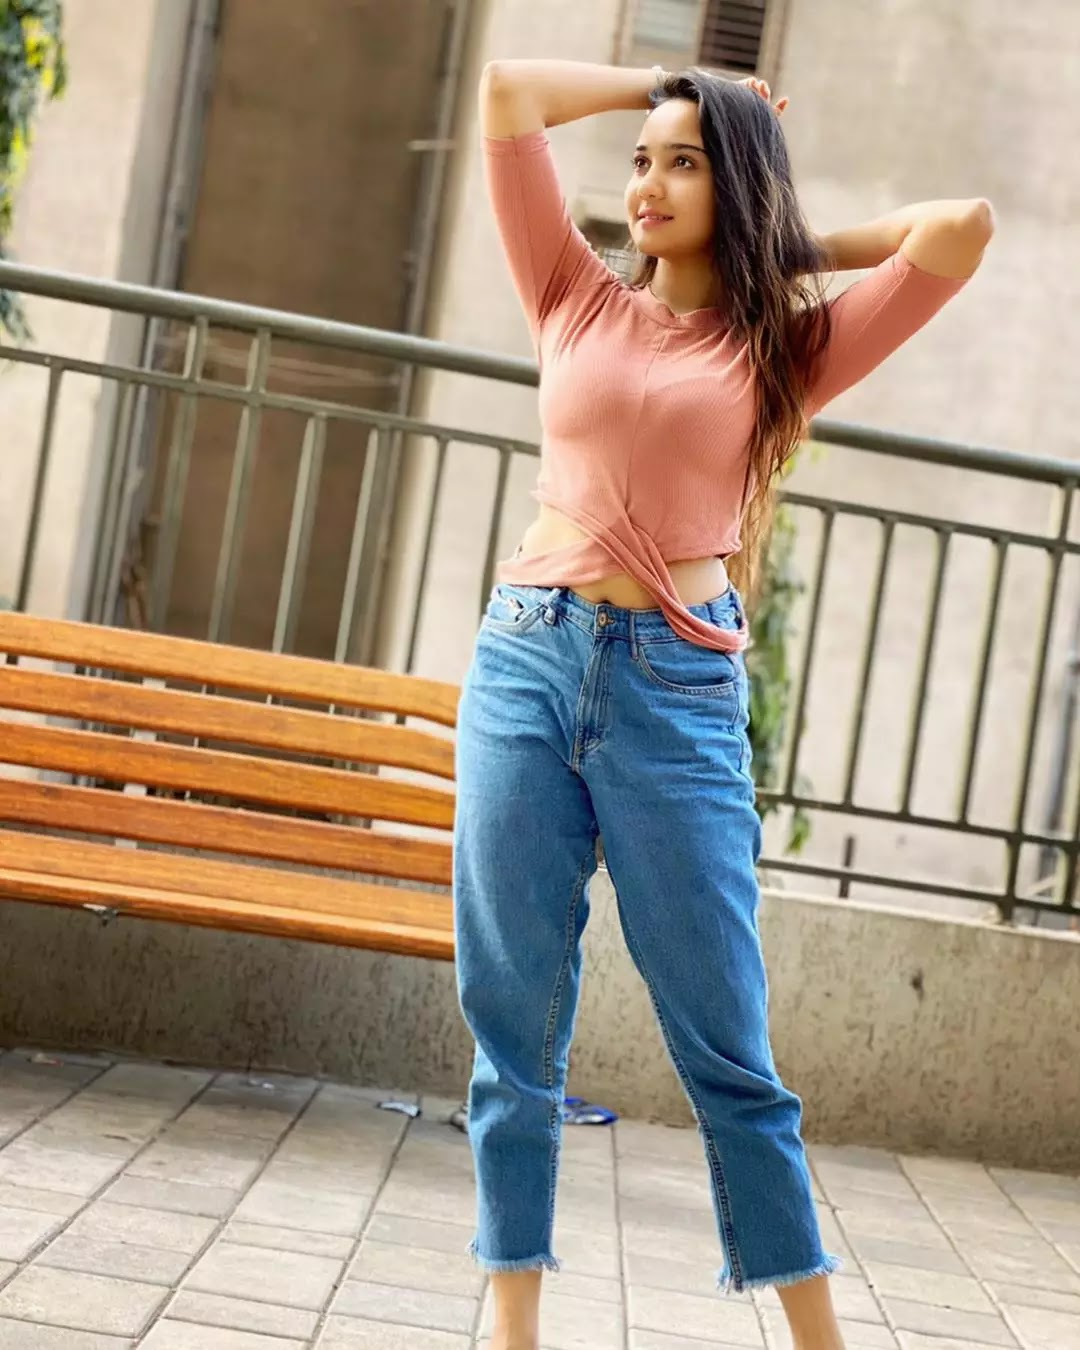 hot ashi singh in jeans